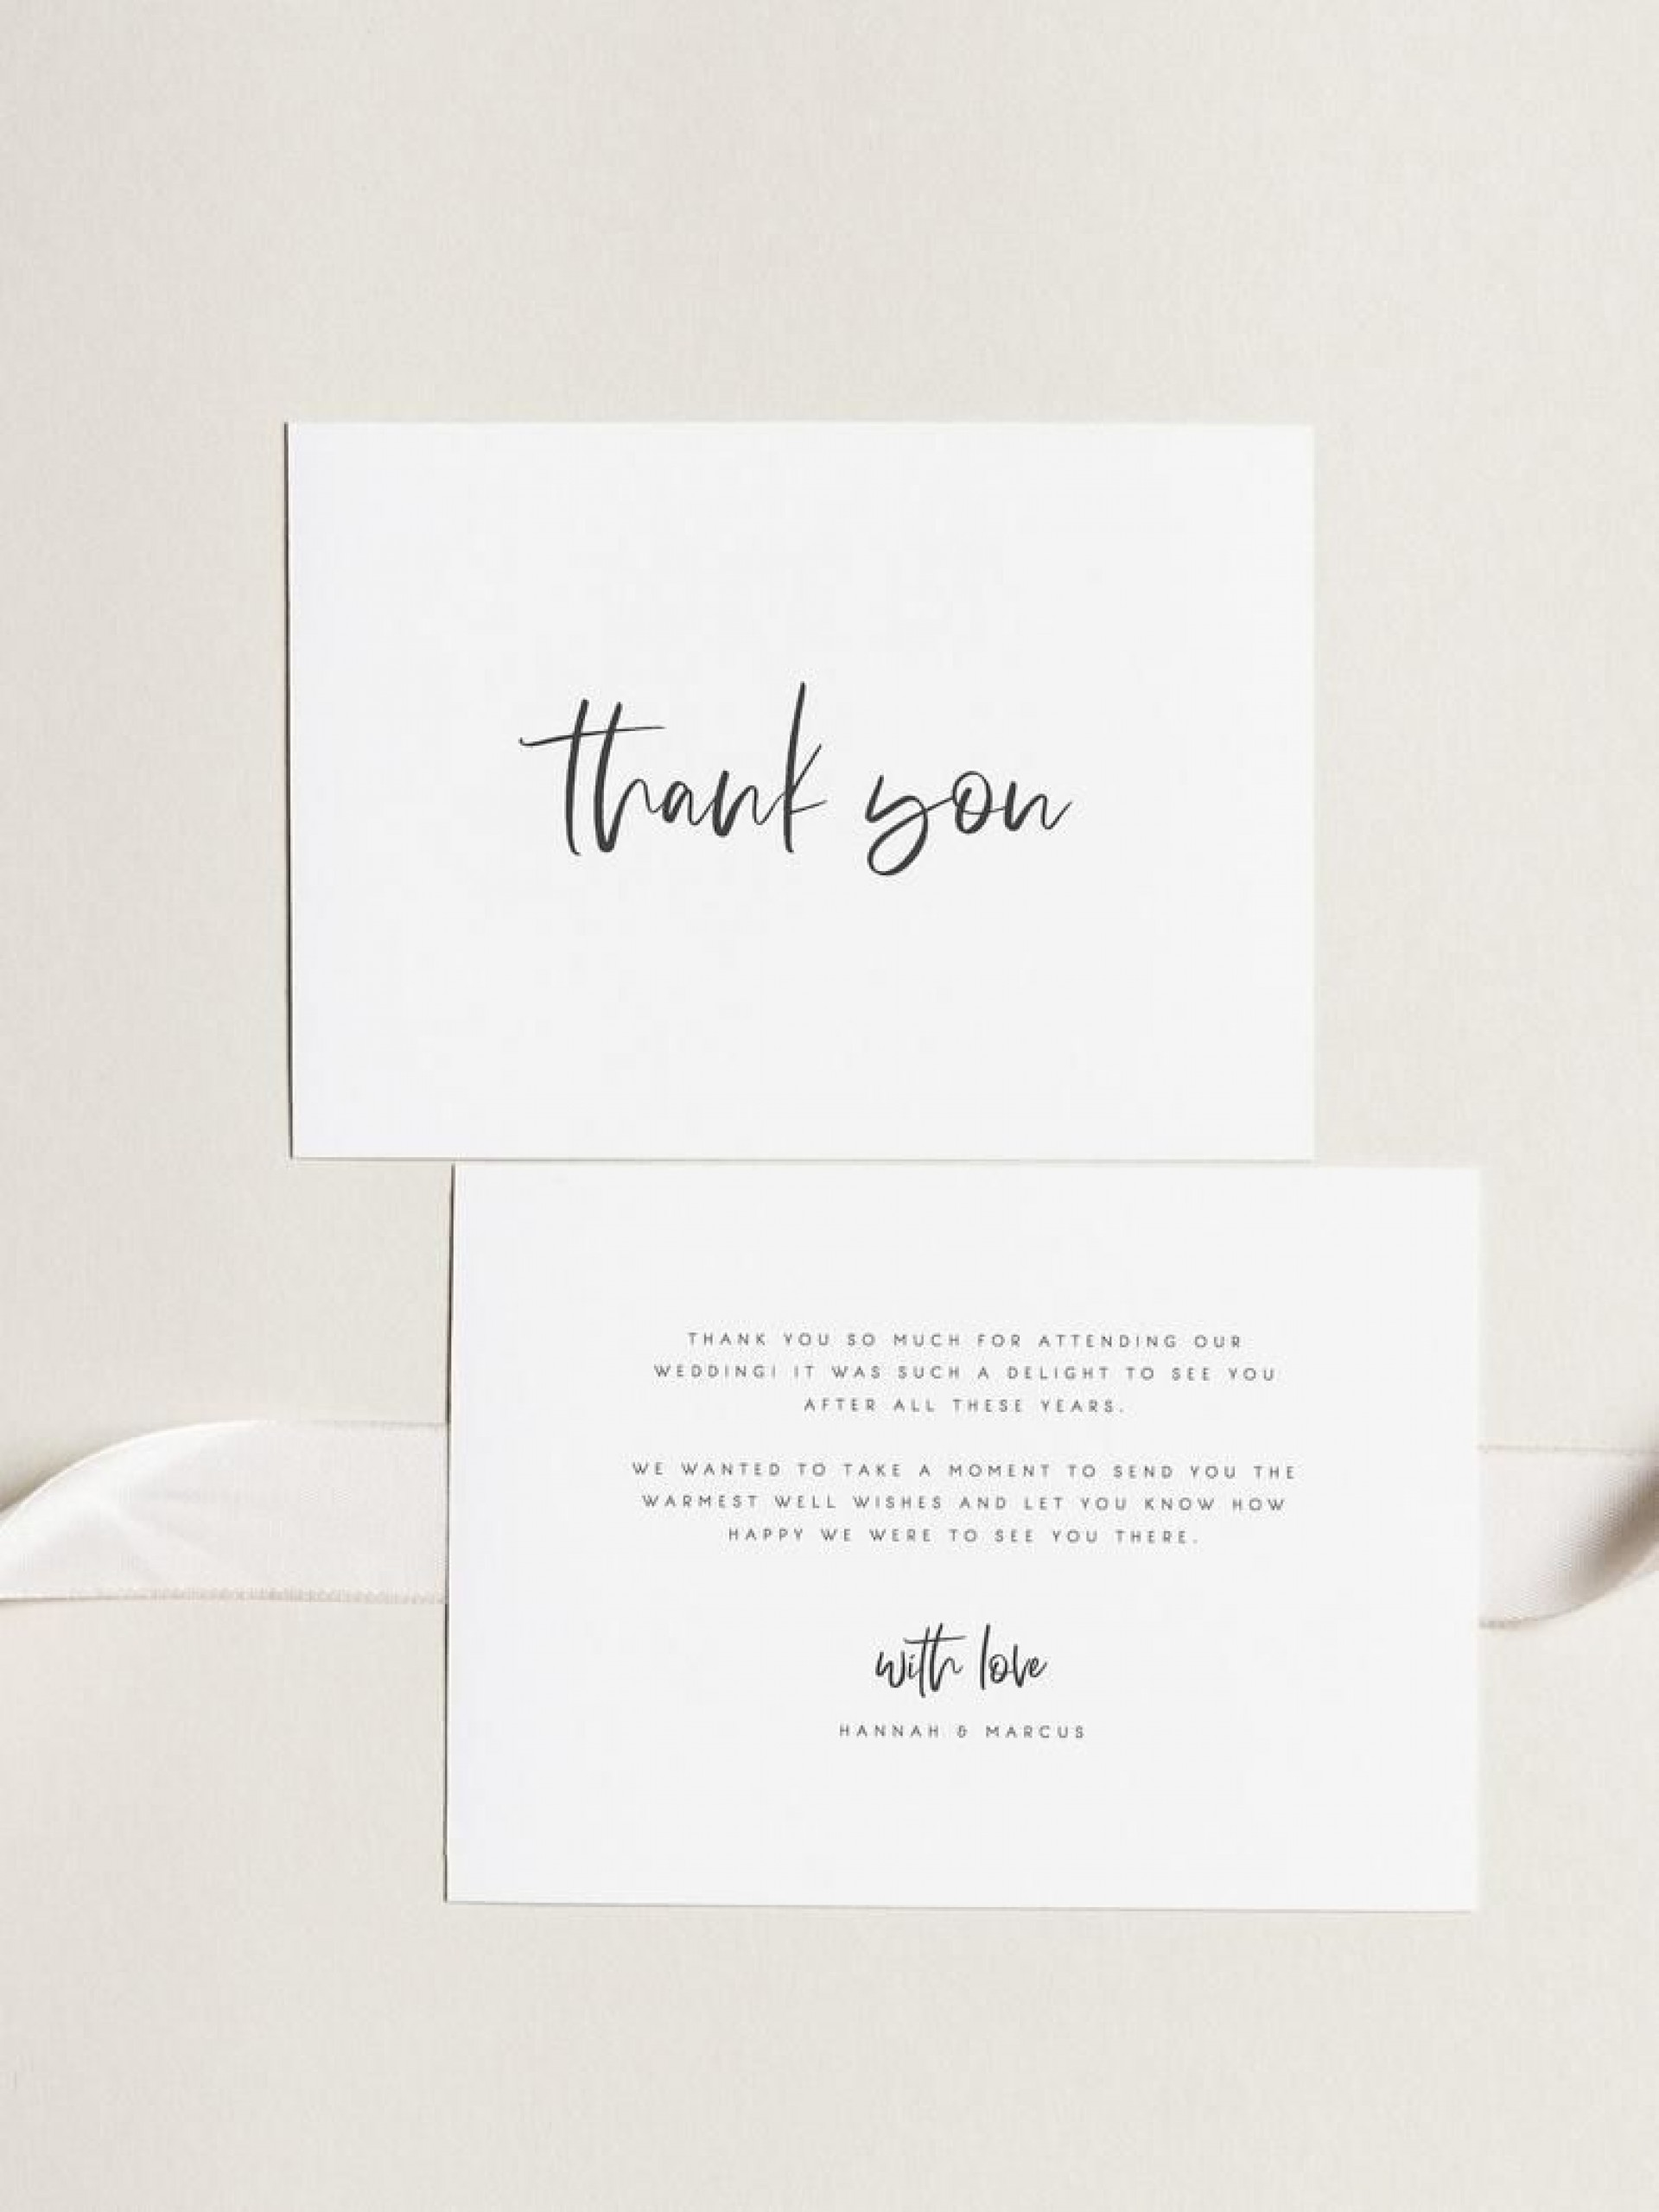 000 Archaicawful Wedding Thank You Card Template Example  Message Sample Free Download Wording For Money1920